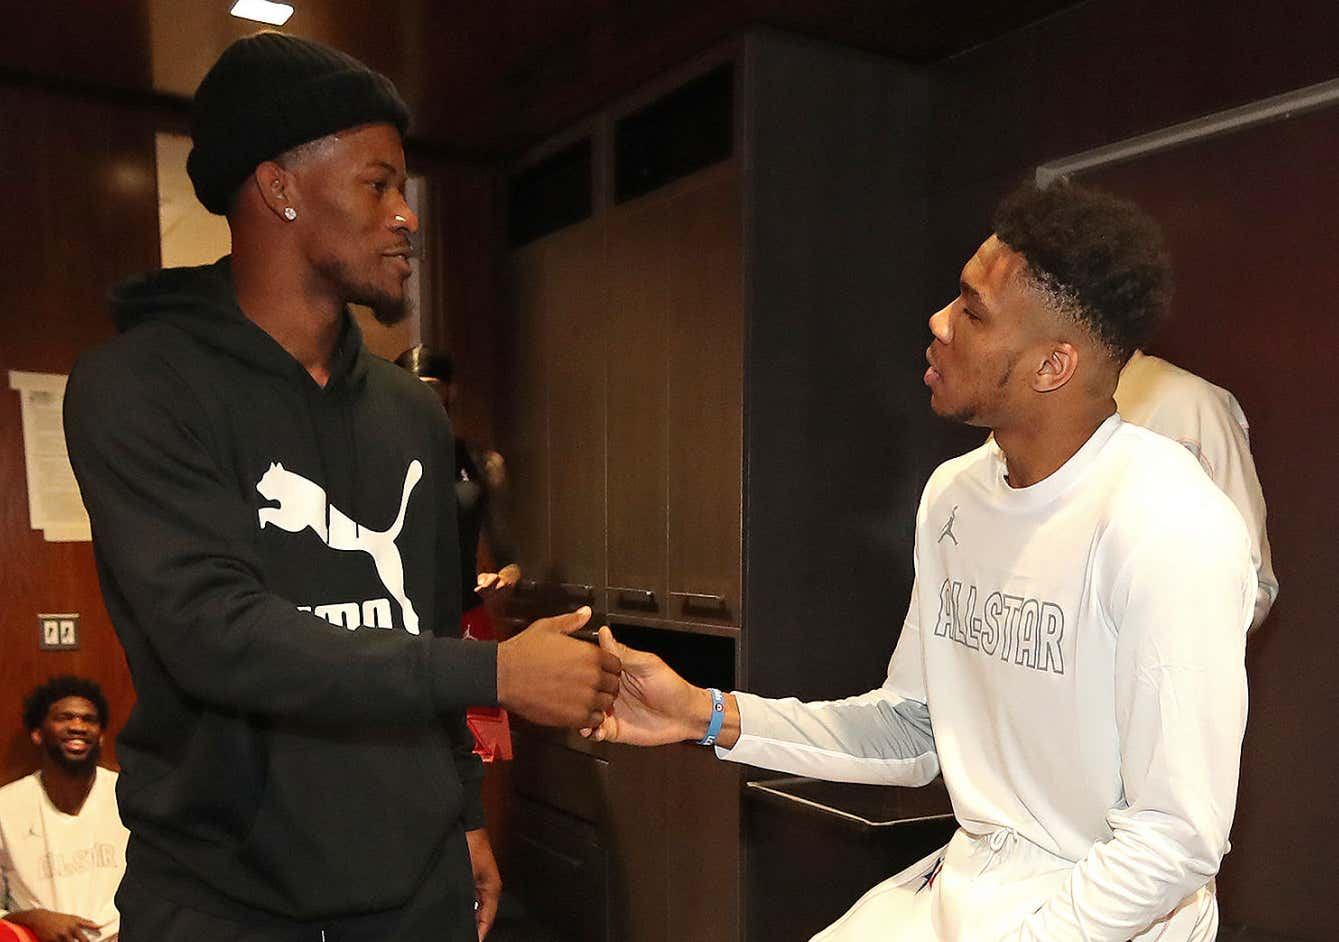 CHICAGO, IL - FEBRUARY 16: Jimmy Butler #24 of Team Giannis high-fives Giannis Antetokounmpo #24 of Team Giannis in the locker room before the game during the 69th NBA All-Star Game on February 16, 2020 at the United Center in Chicago, Illinois. NOTE TO USER: User expressly acknowledges and agrees that, by downloading and or using this photograph, User is consenting to the terms and conditions of the Getty Images License Agreement. Mandatory Copyright Notice: Copyright 2020 NBAE (Photo by Nathaniel S. Butler/NBAE via Getty Images)